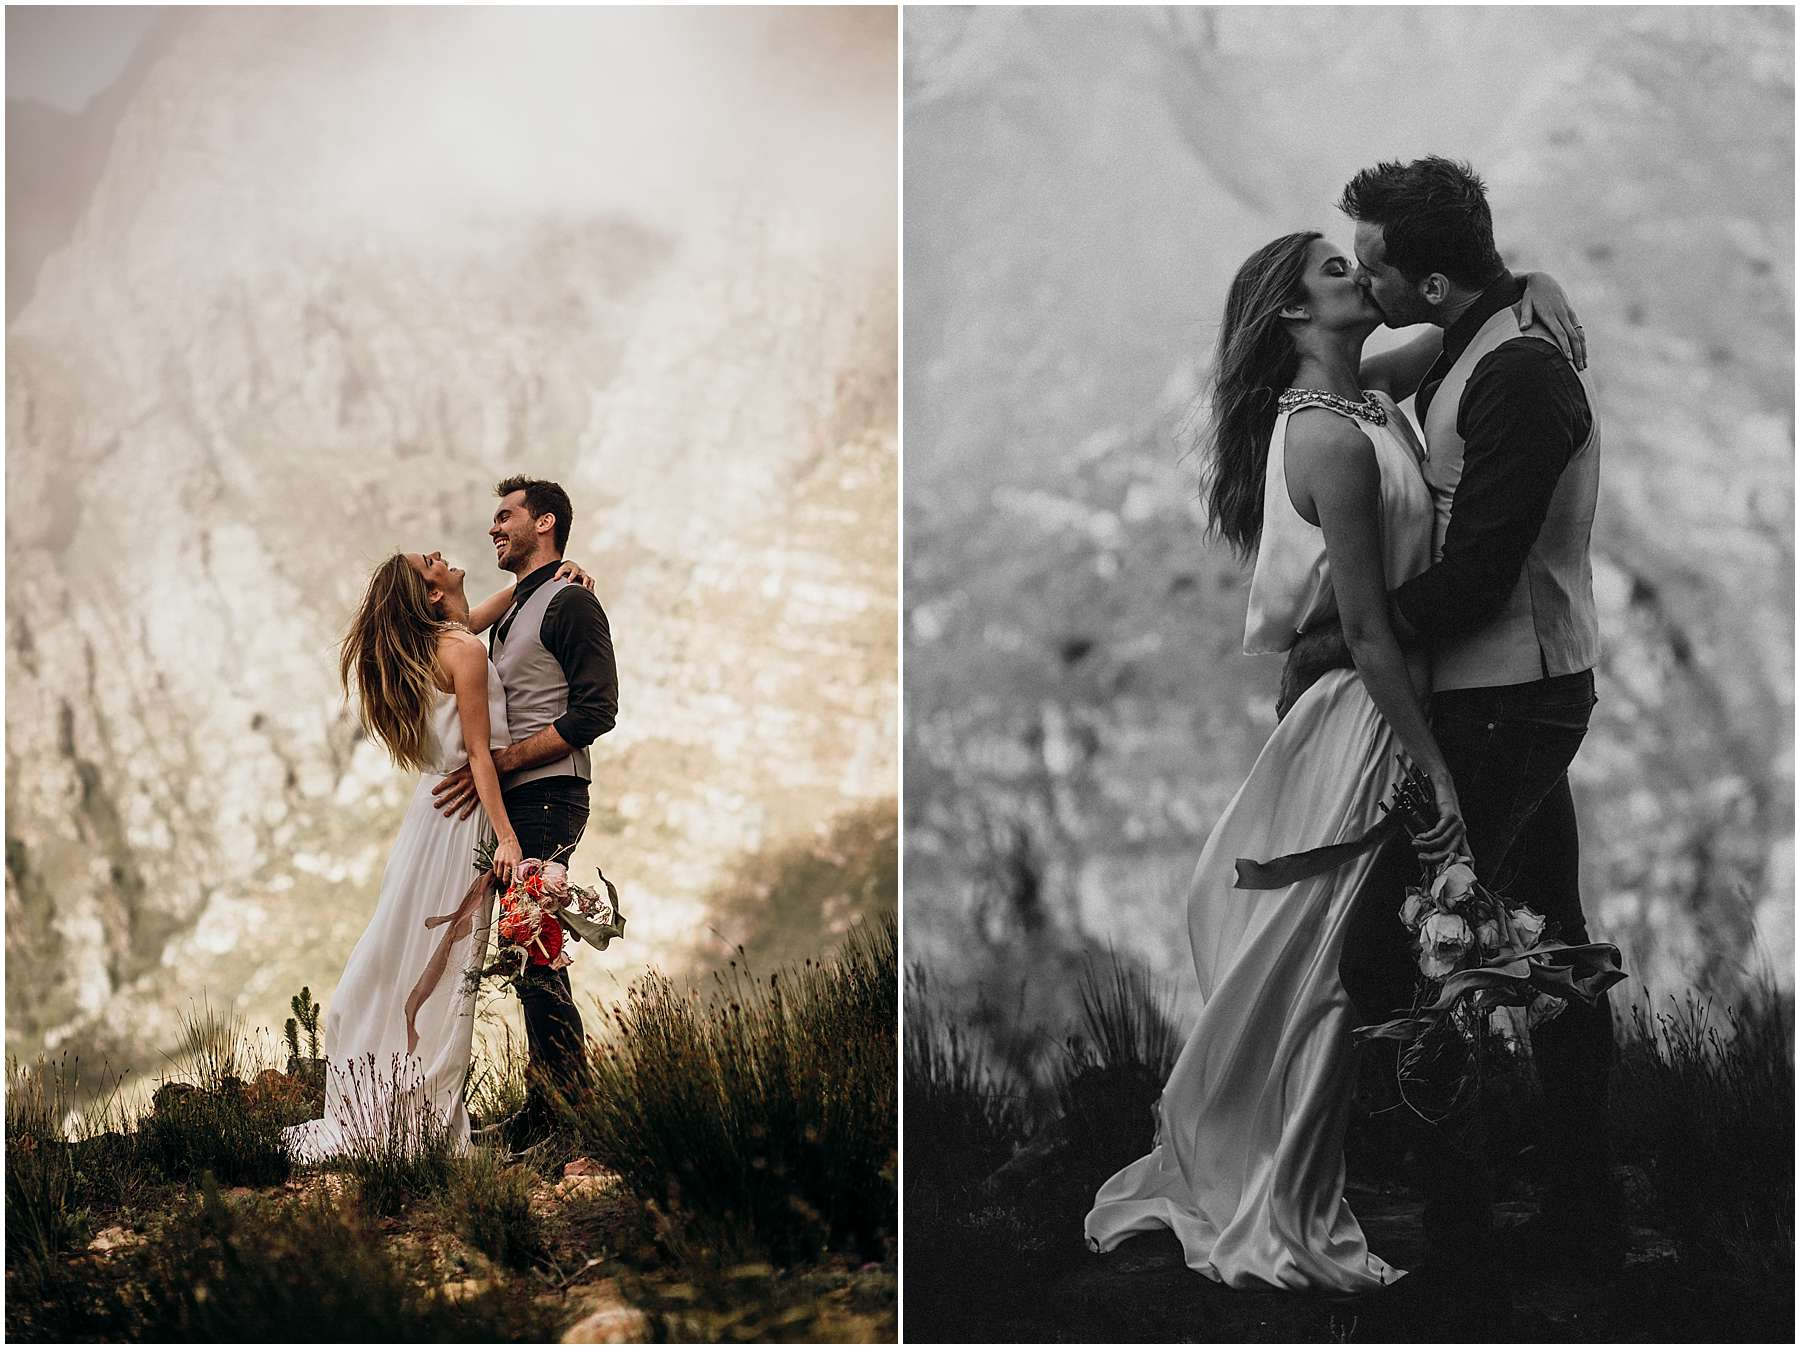 LOTTYH-South-Africa-Cape-Town-Elopement-Photographer_0010.jpg